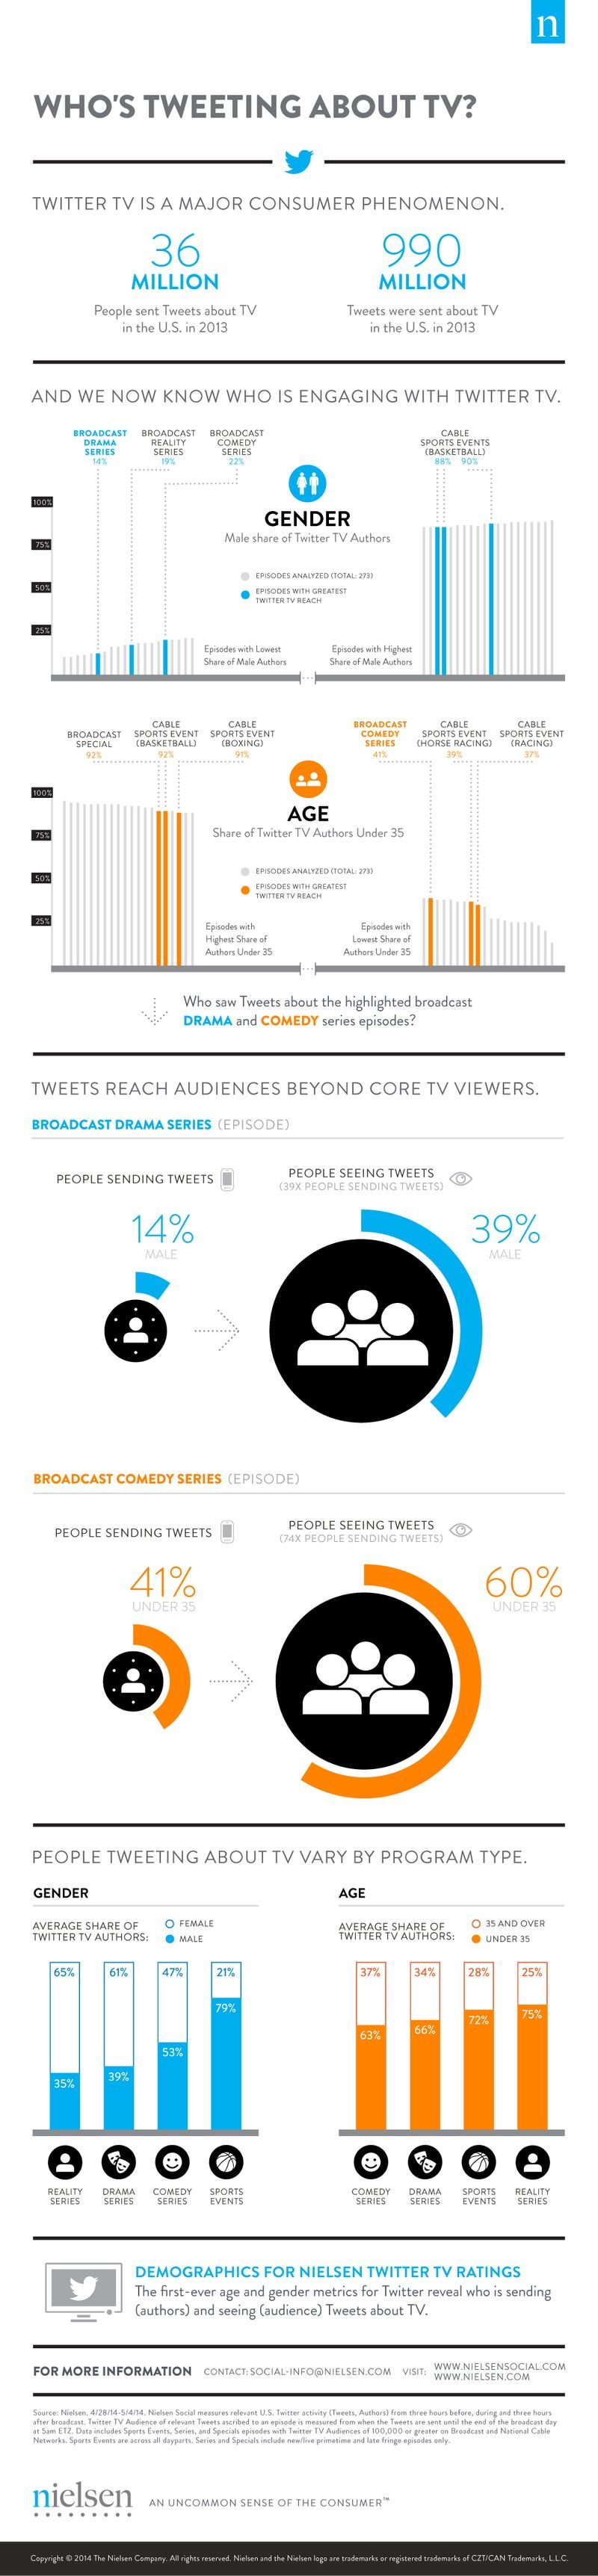 How Is Social TV Growing And Who Is Tweeting About TV? #SocialTV #Infographic